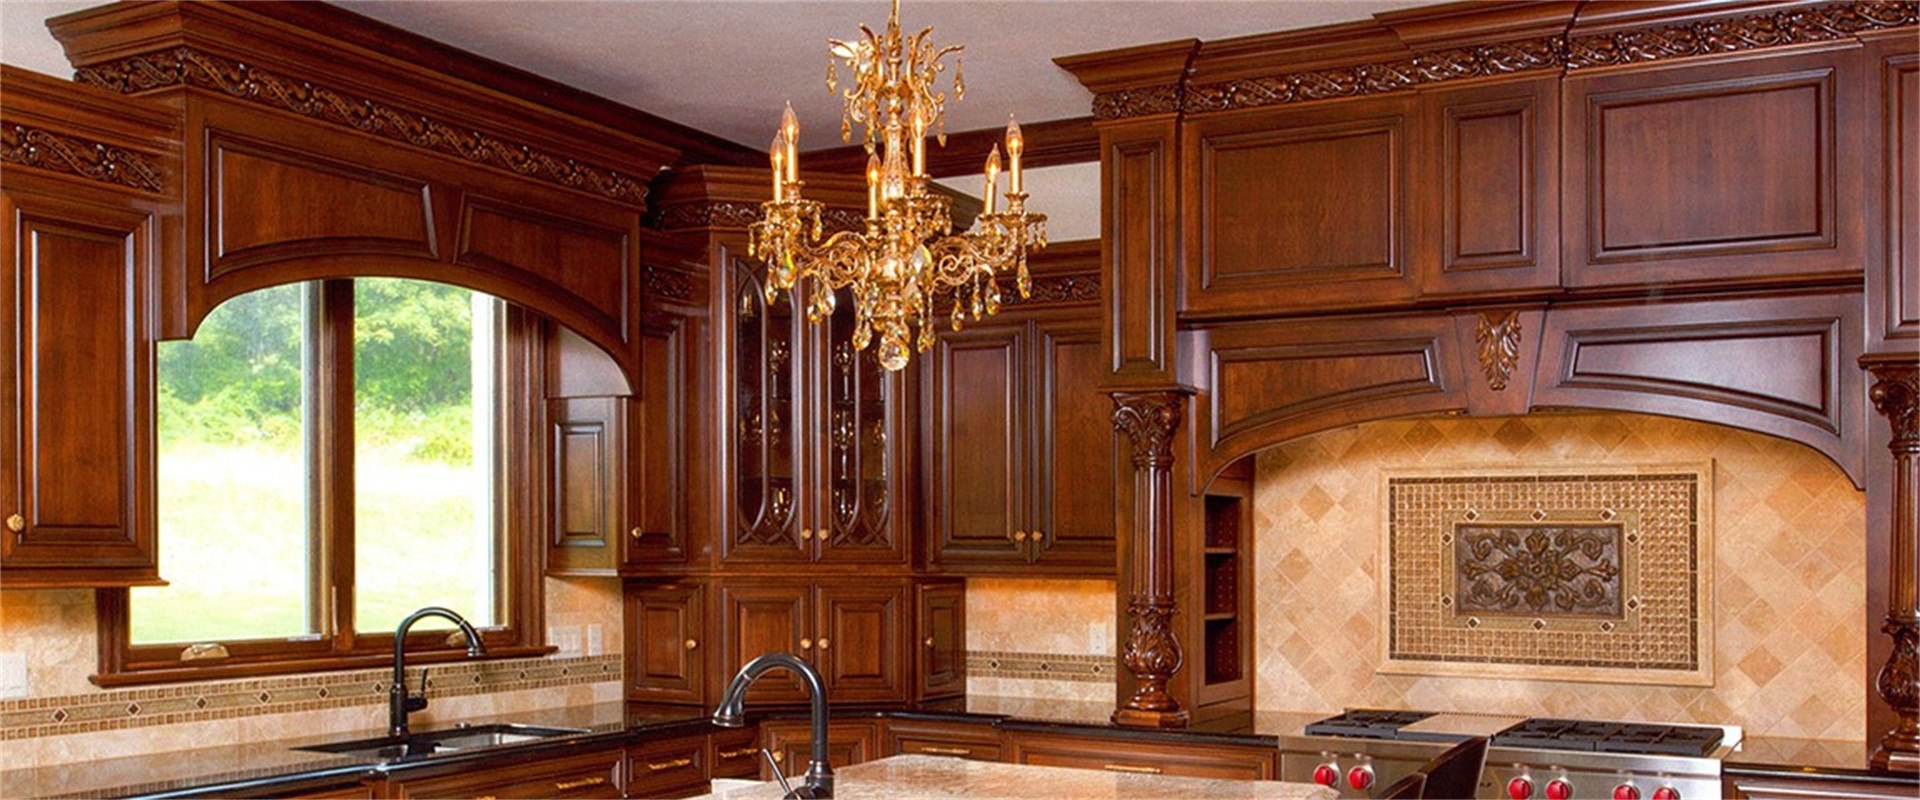 richly_stained_gourmet_kitchen